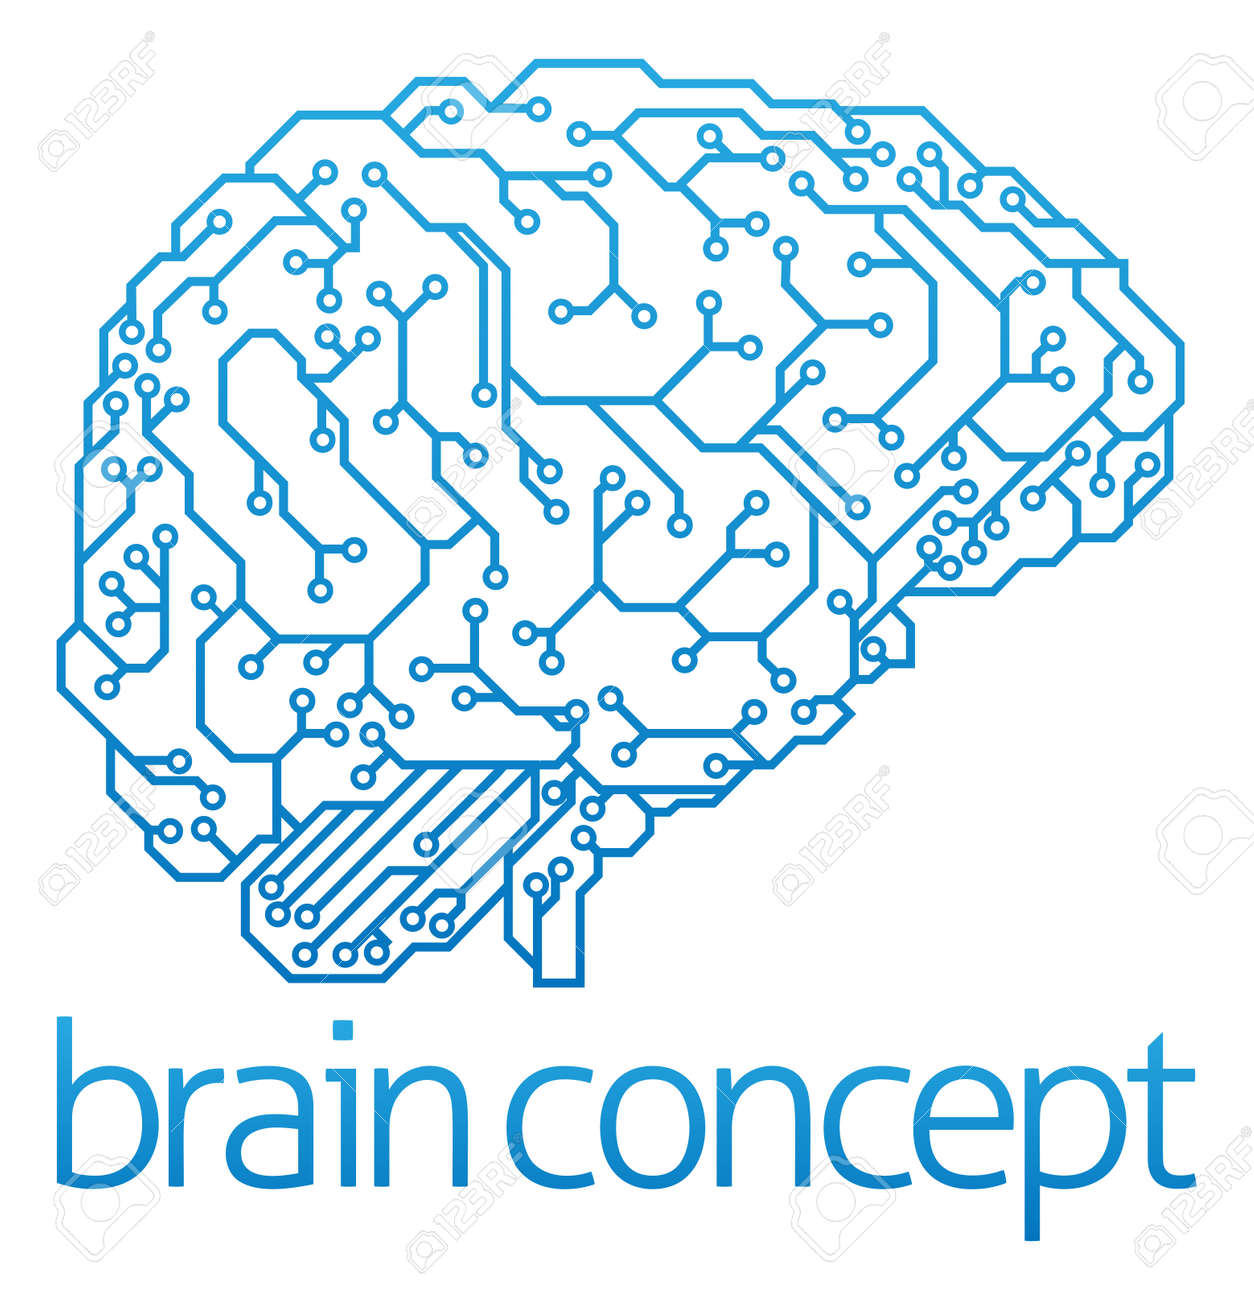 11600 Electronic Healthcare Cliparts Stock Vector And Royalty Free Circuit Board Graphic Design Grunge Photos An Abstract Illustration Of Brain In Profile Ai Artificial Intelligence Concept